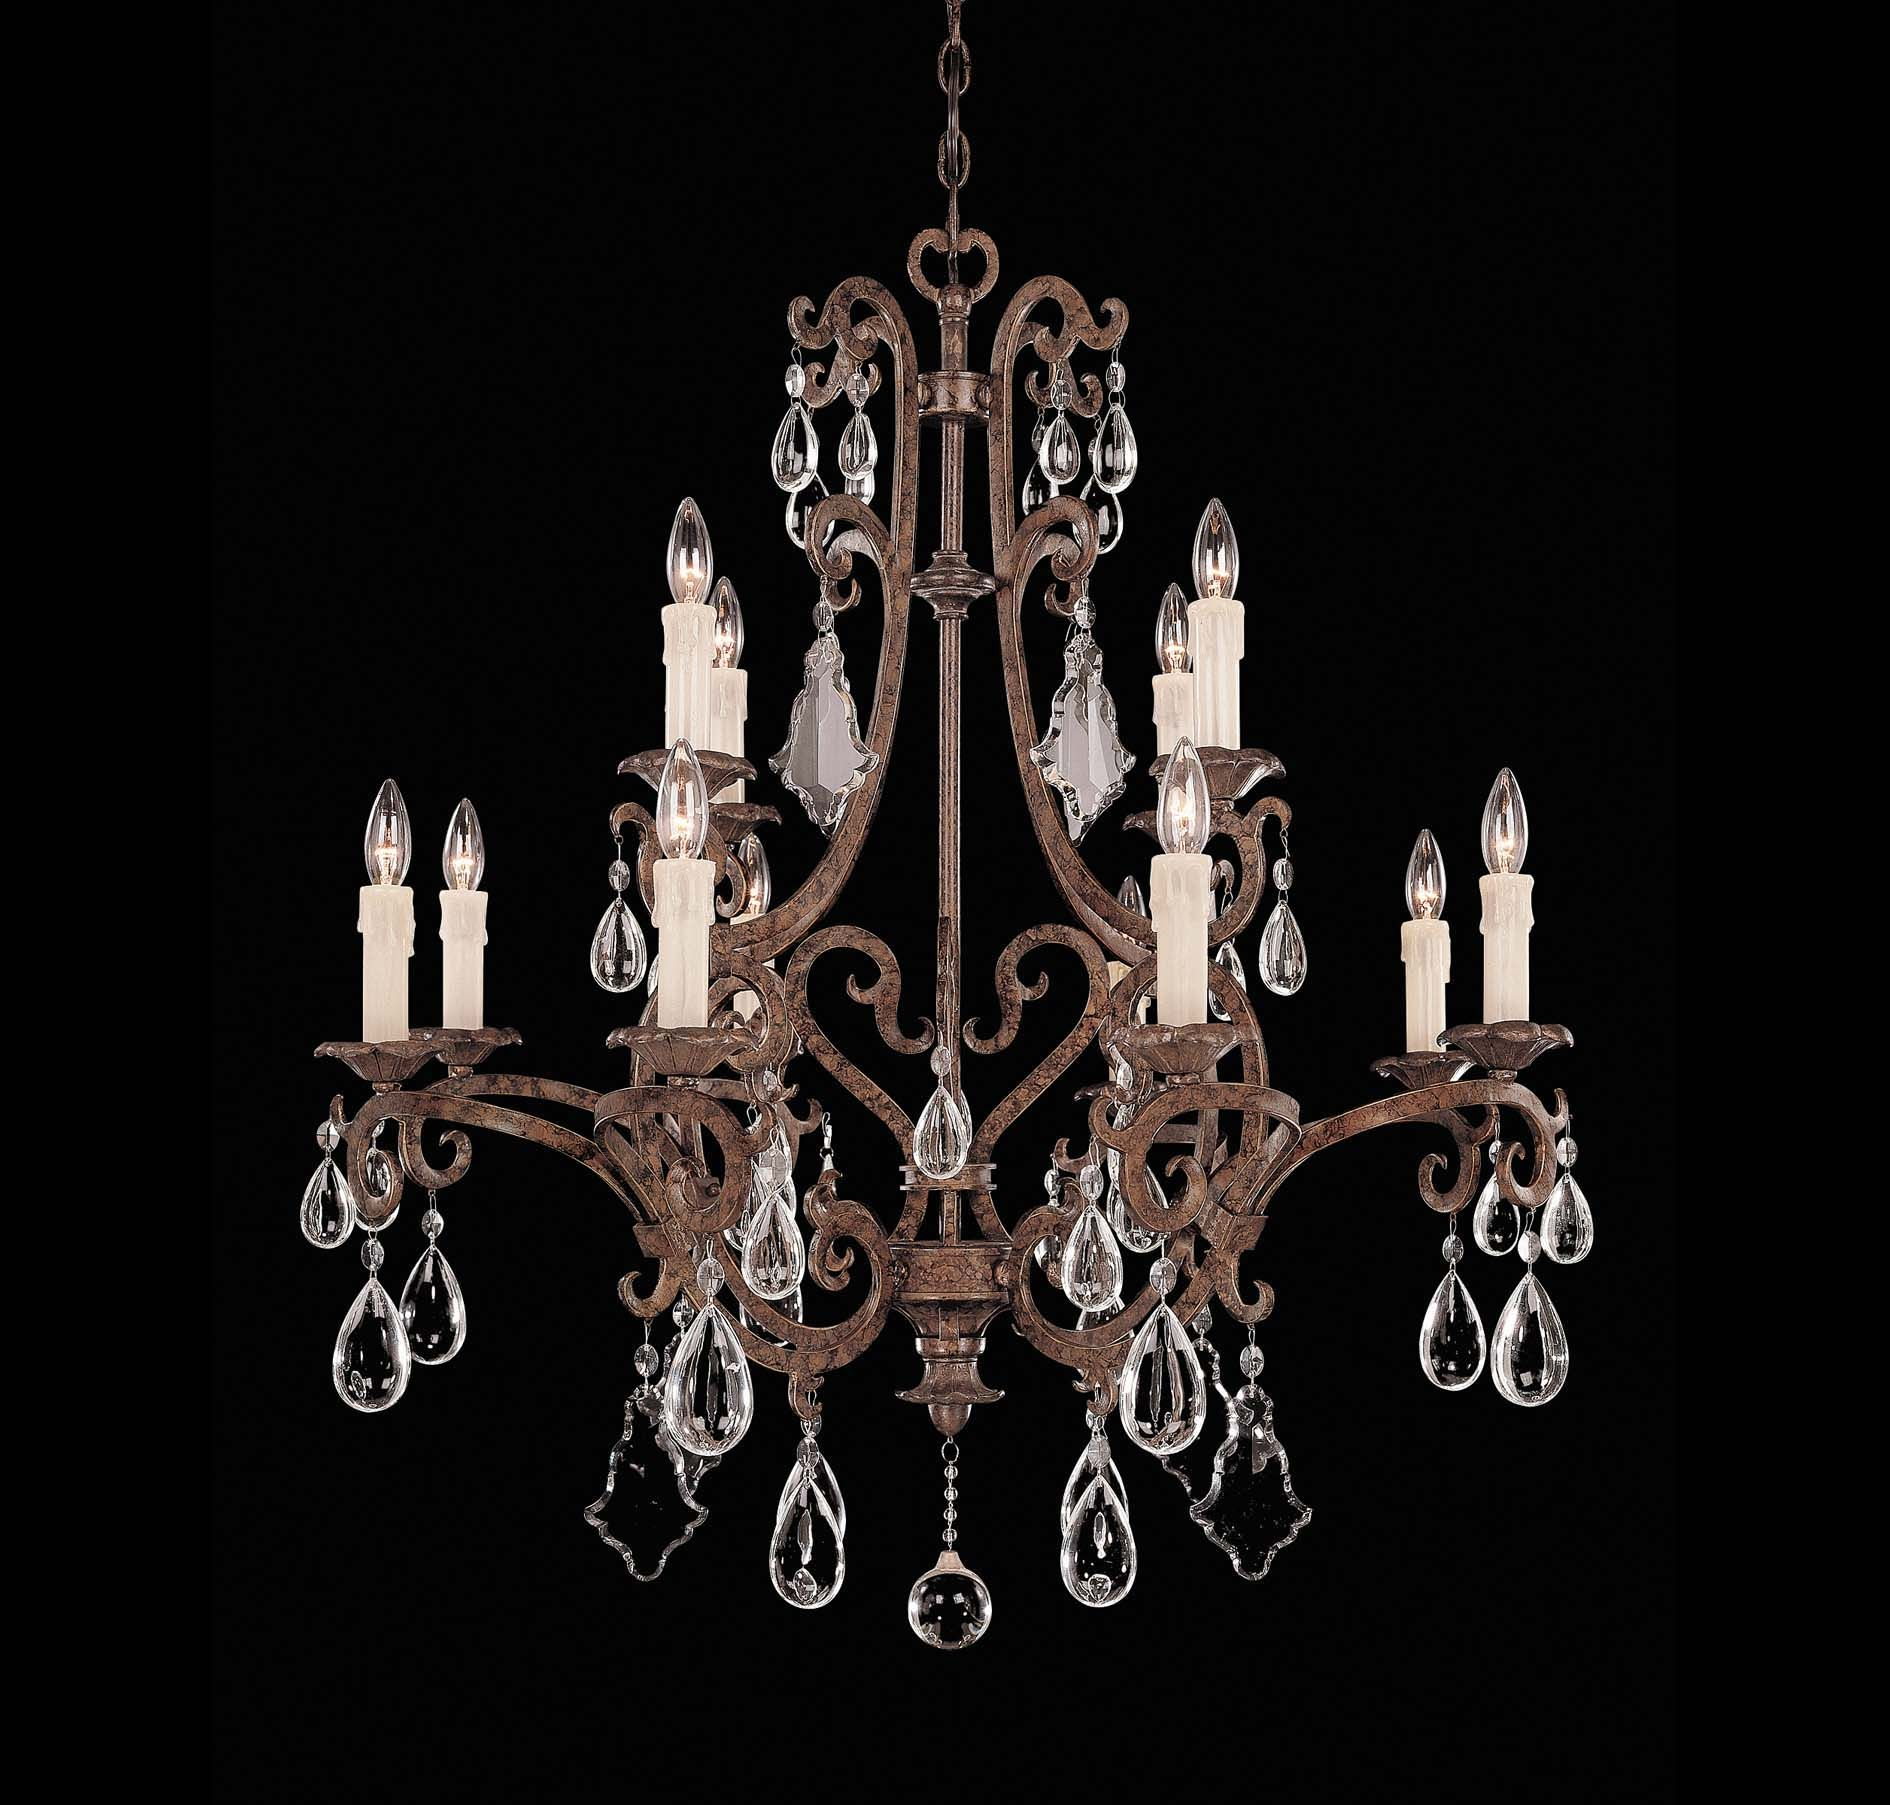 Florence 12 light chandelier chandeliers products savoy florence 12 light chandelier chandeliers products savoy house lighting aloadofball Choice Image